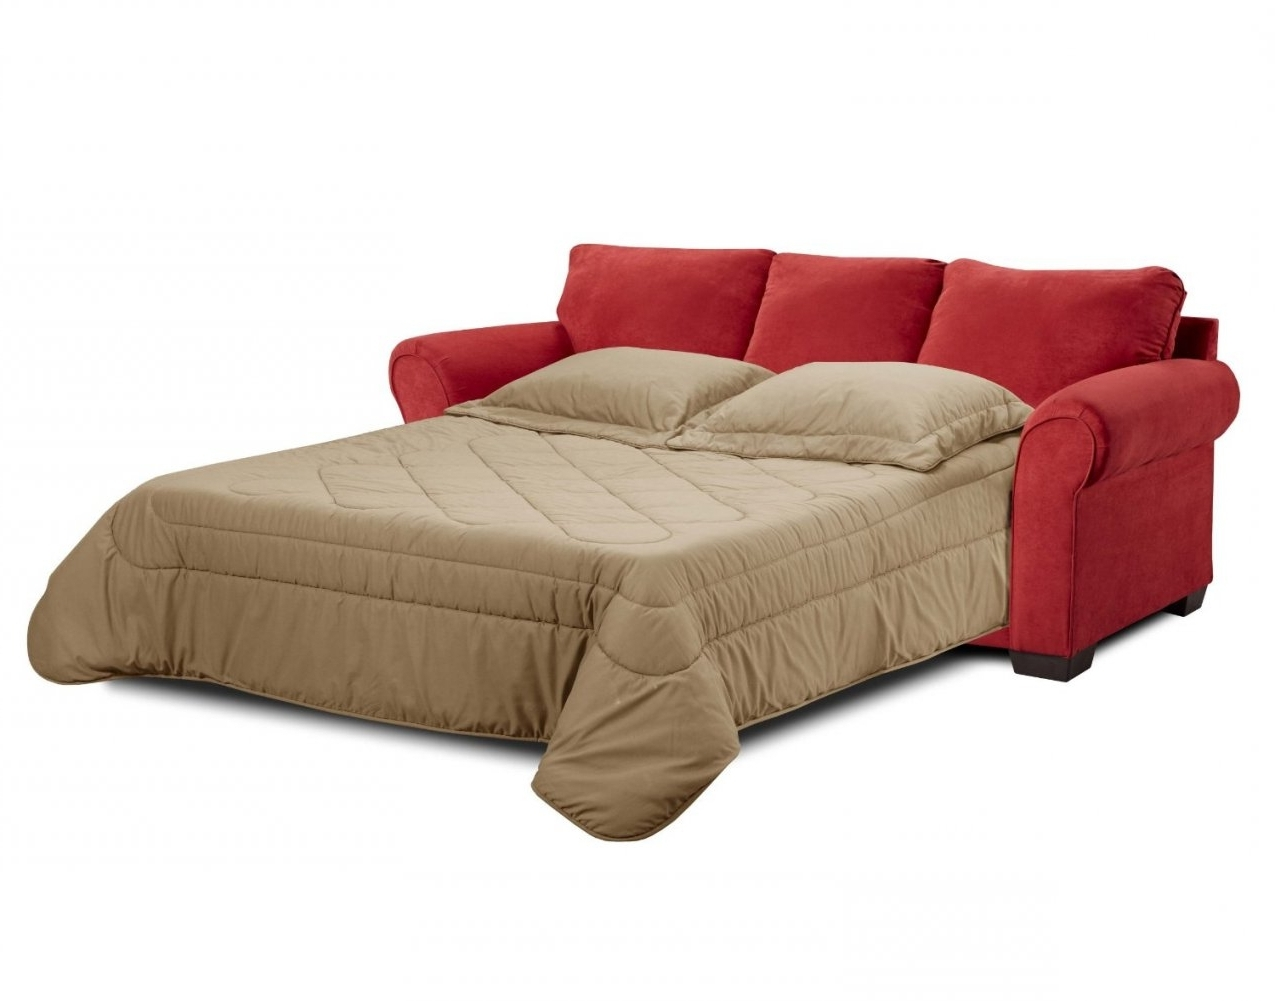 2019 Queen Size Sofas Inside Queen Size Sleeper Sofa 98 On Sofa Room Ideas With Queen Intended (View 2 of 20)